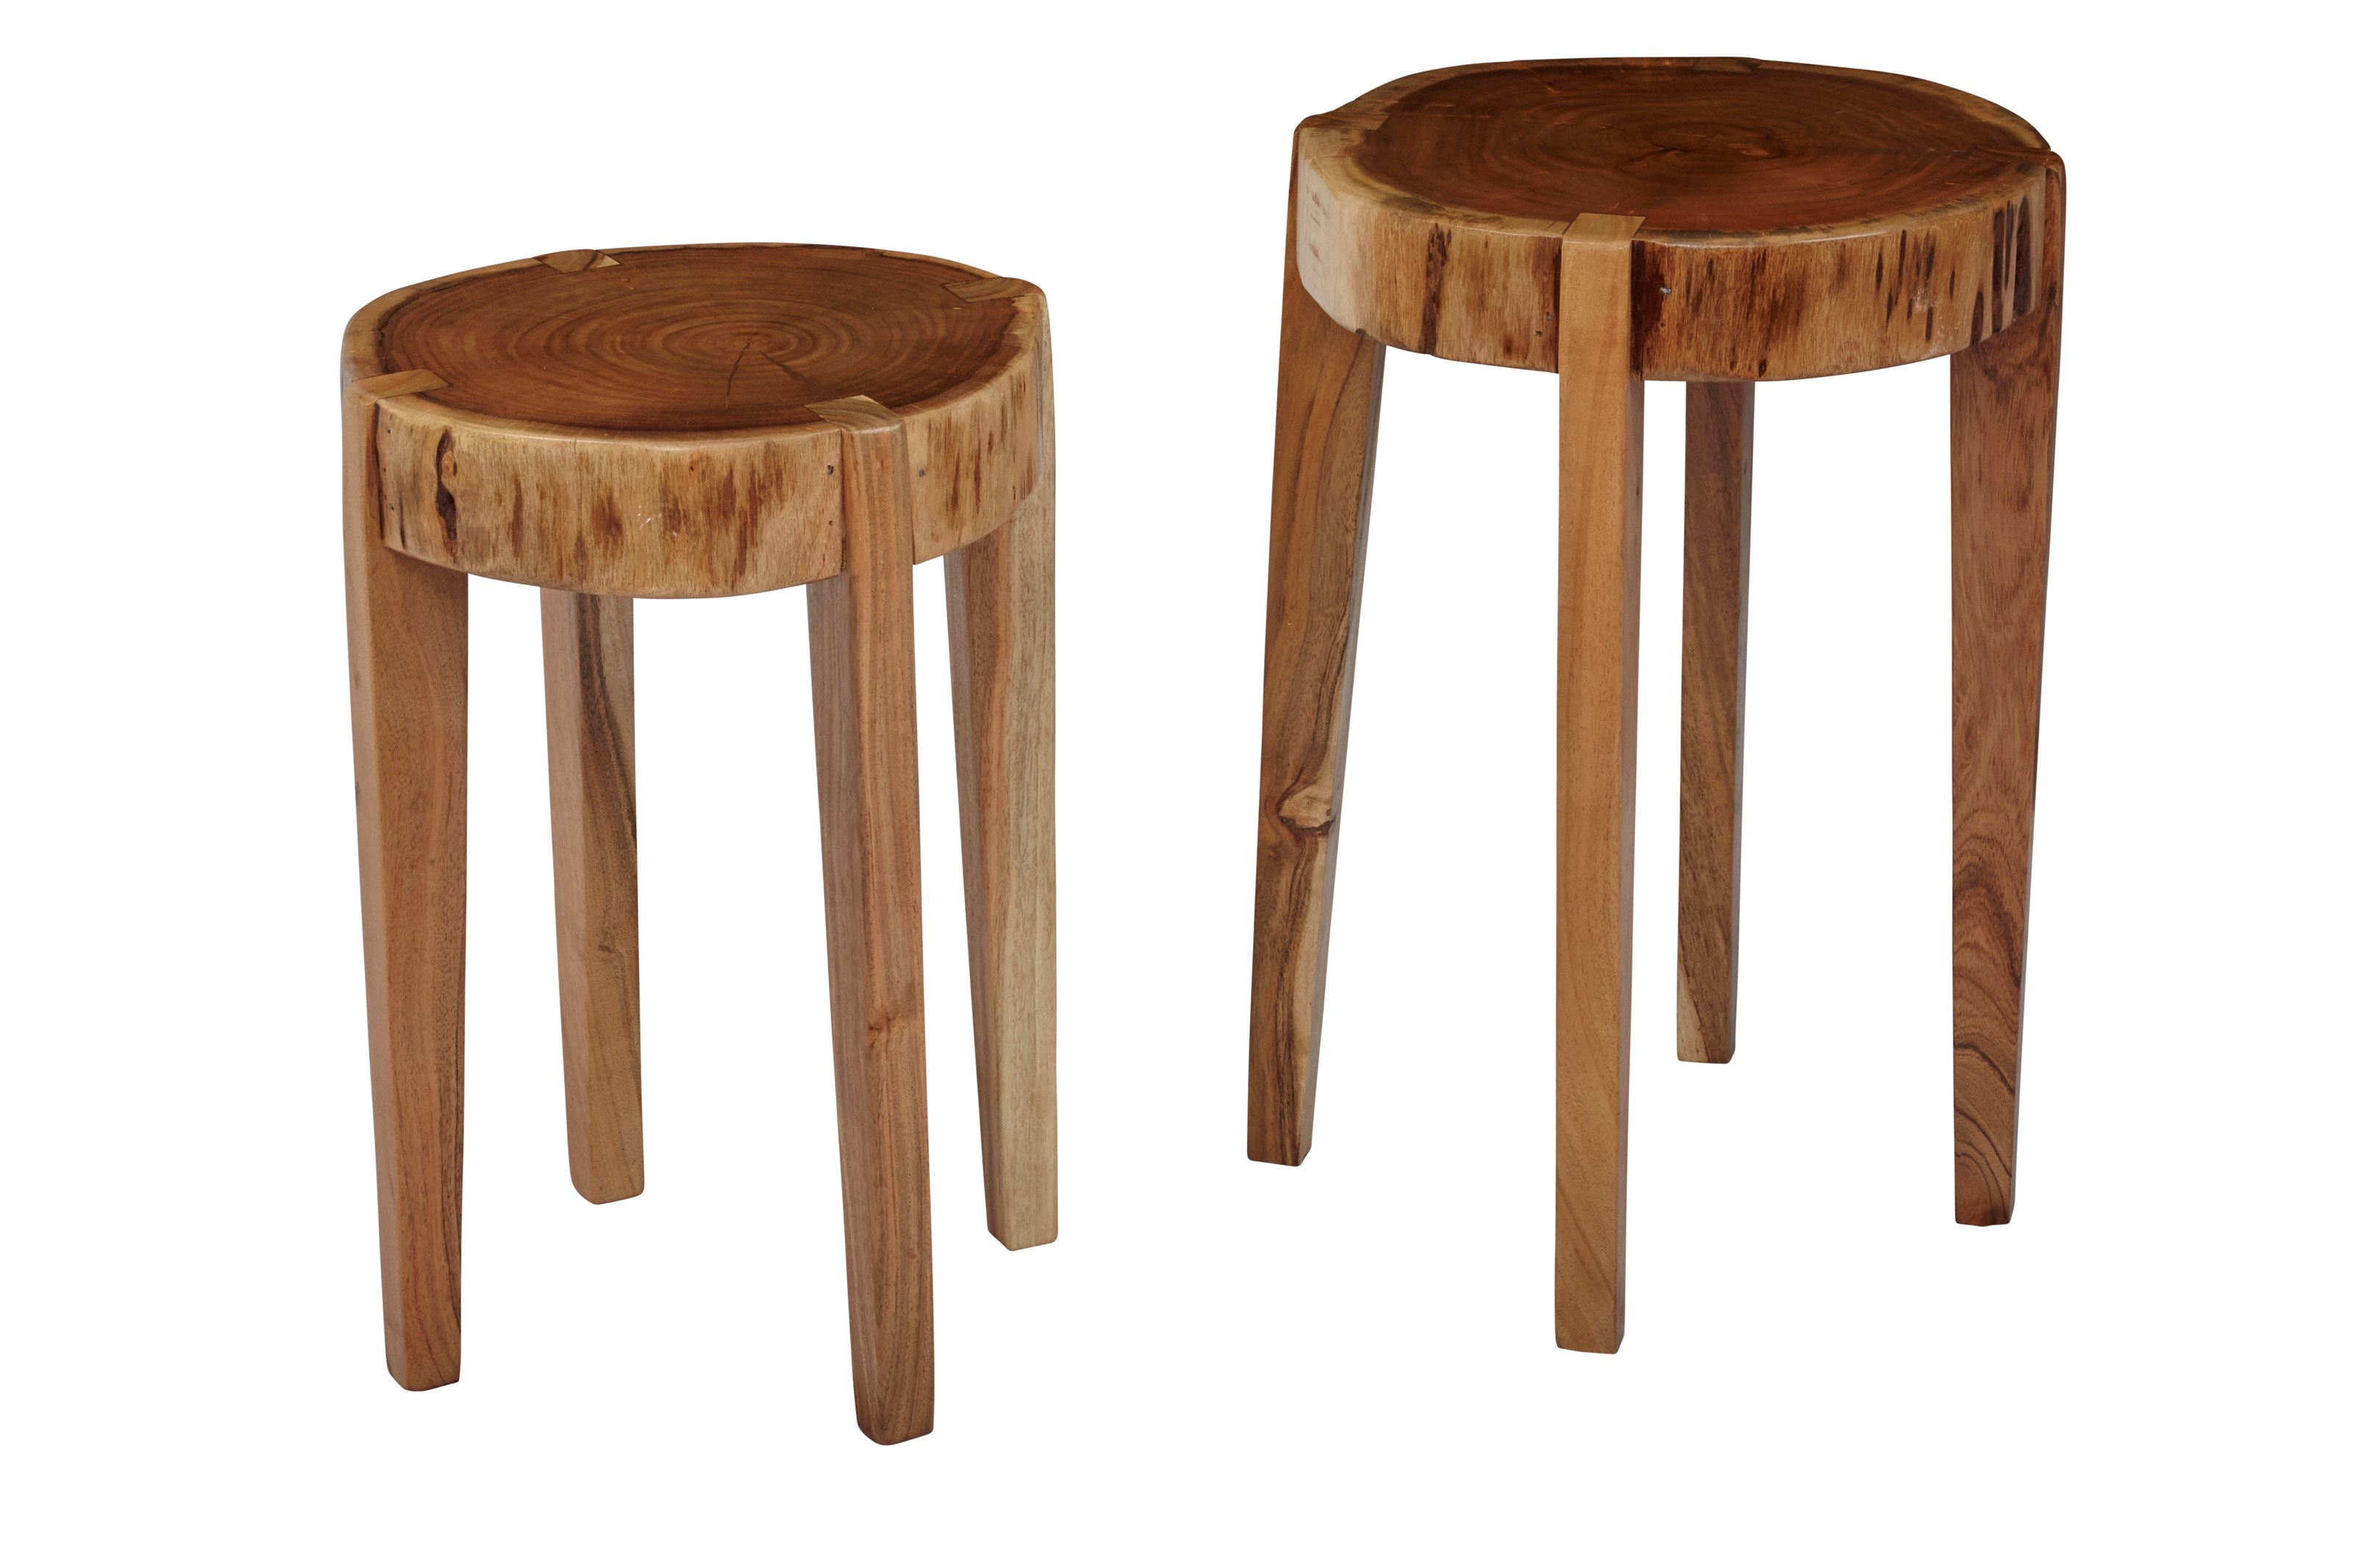 Global Archive All Wood Accent Tables (Set of 2) by Jofran at Jofran